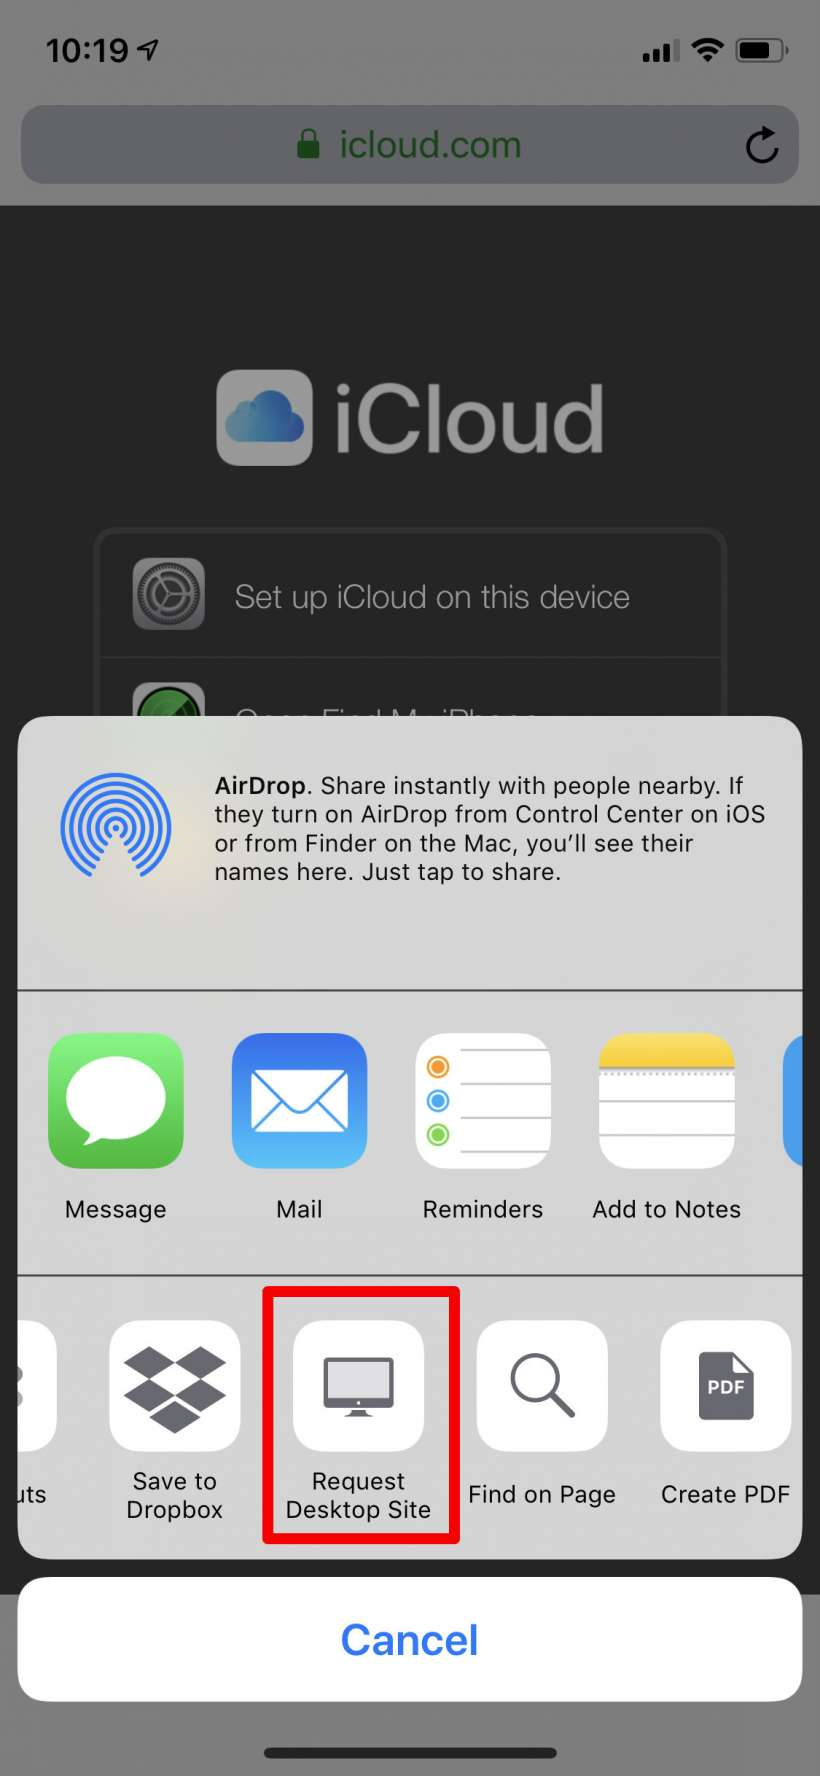 How to log into iCloud from your iPhone or iPad.